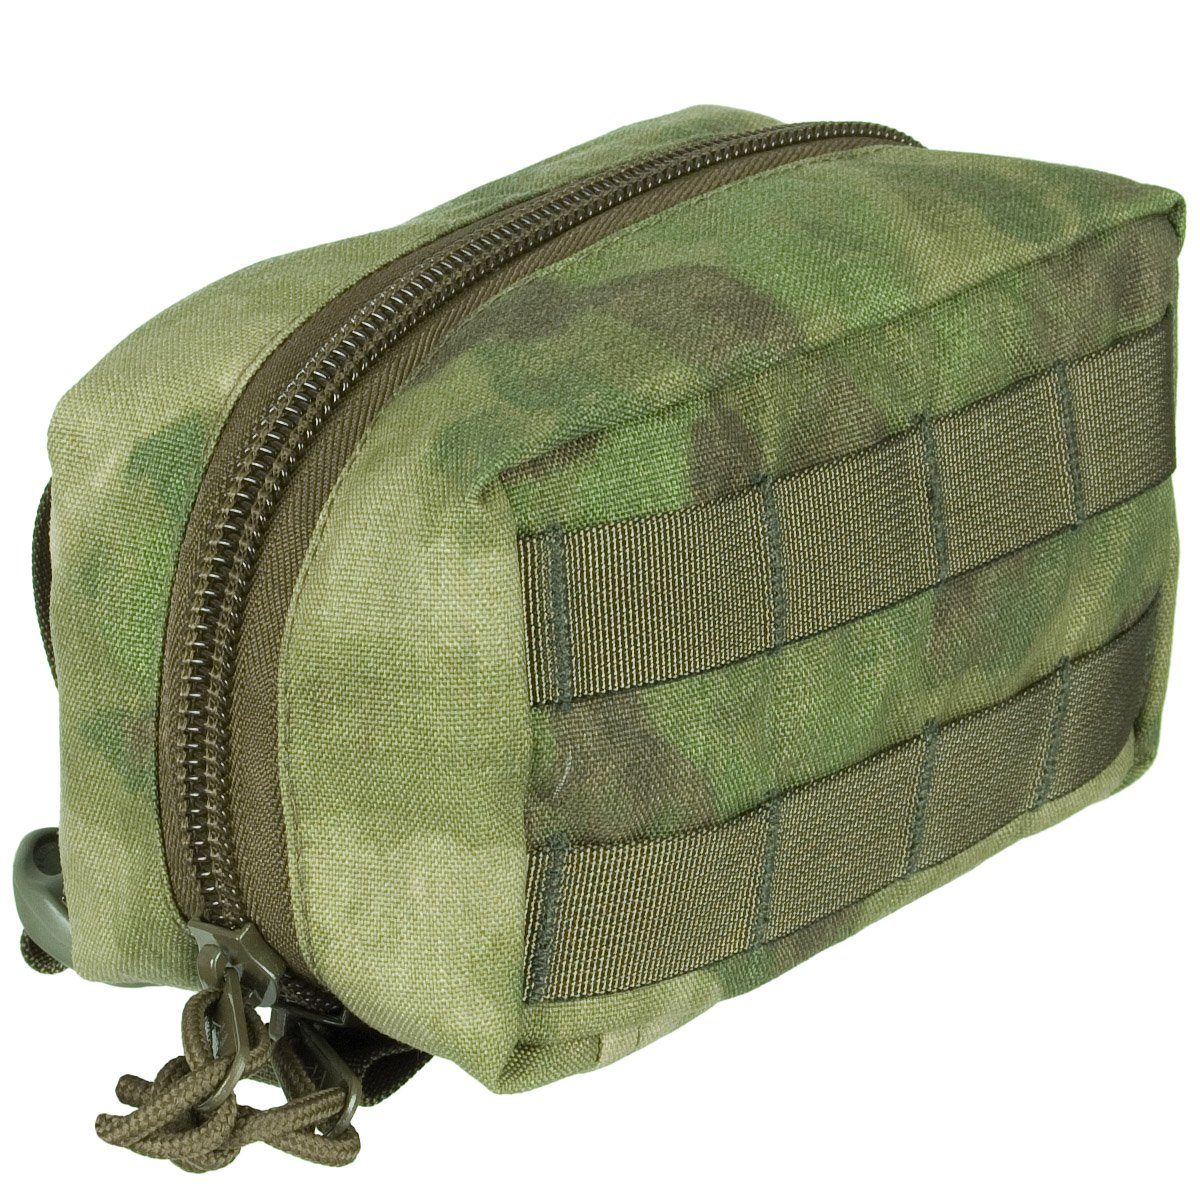 Wisport EMT Pouch MOLLE A-TACS FG by Wisport (Image #1)